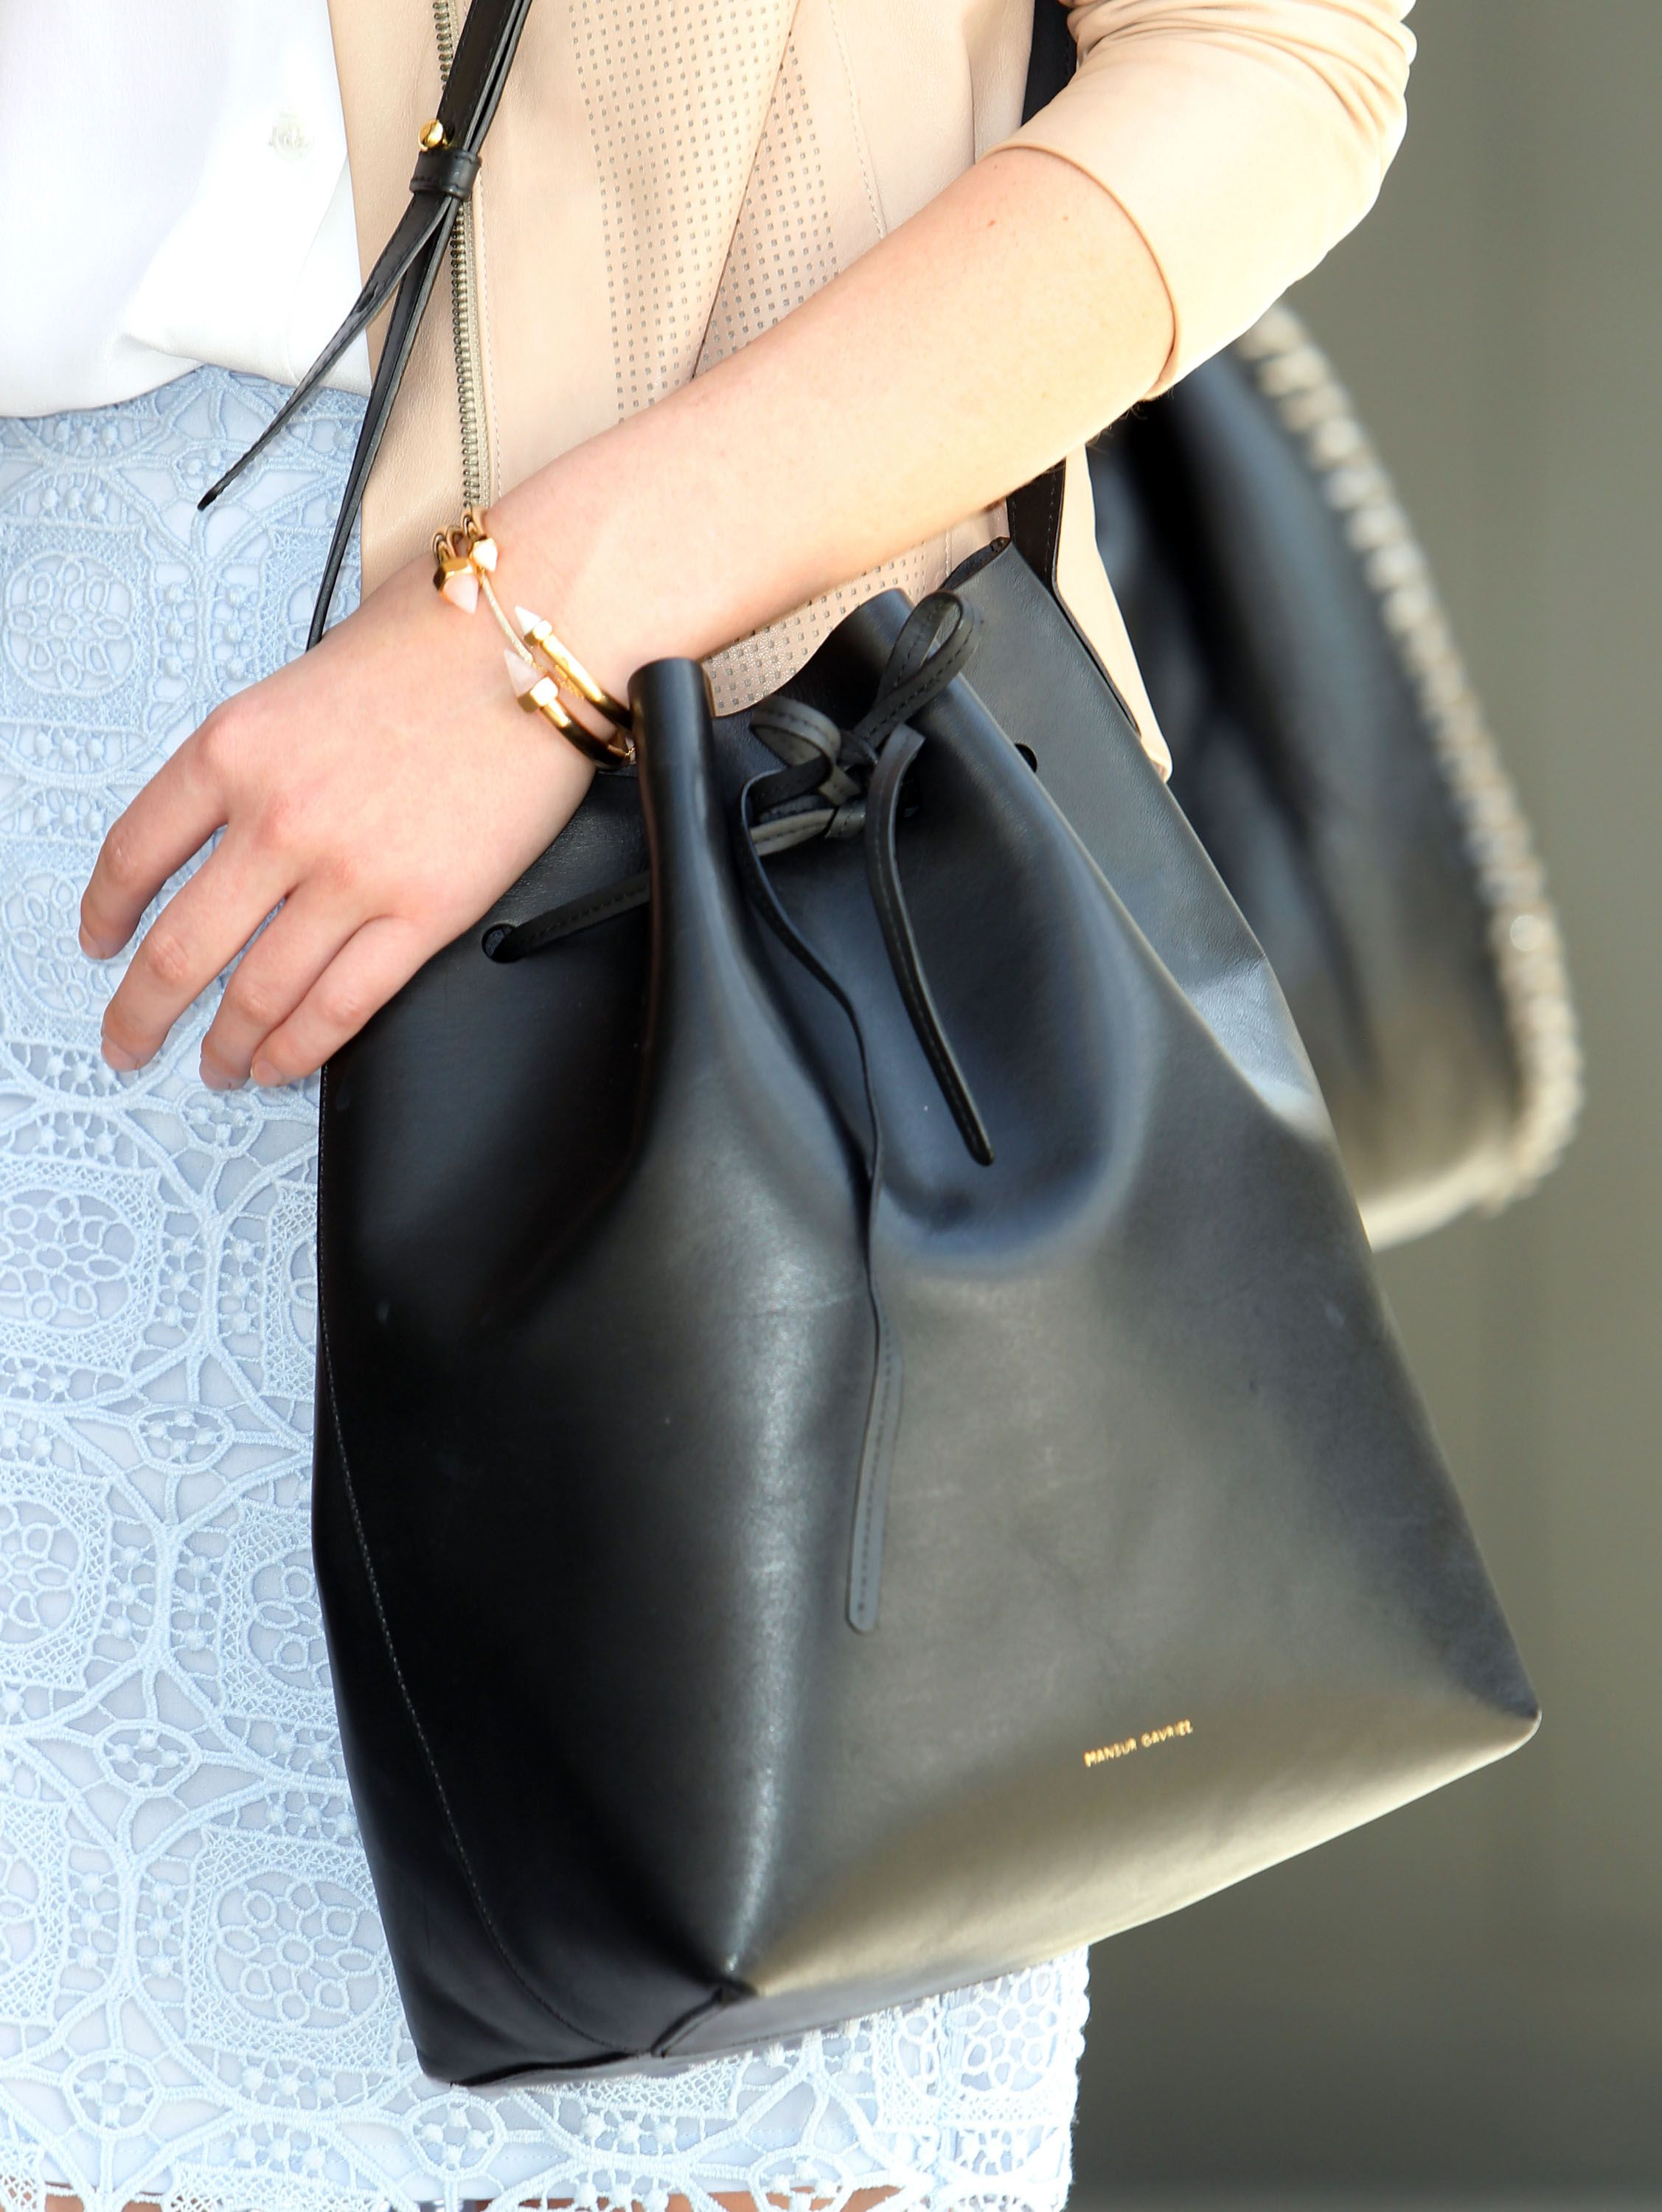 Can't wait to get your hands on the elusive Mansur Gavriel bucket bag? These chic alternatives offer all the style without the wait.